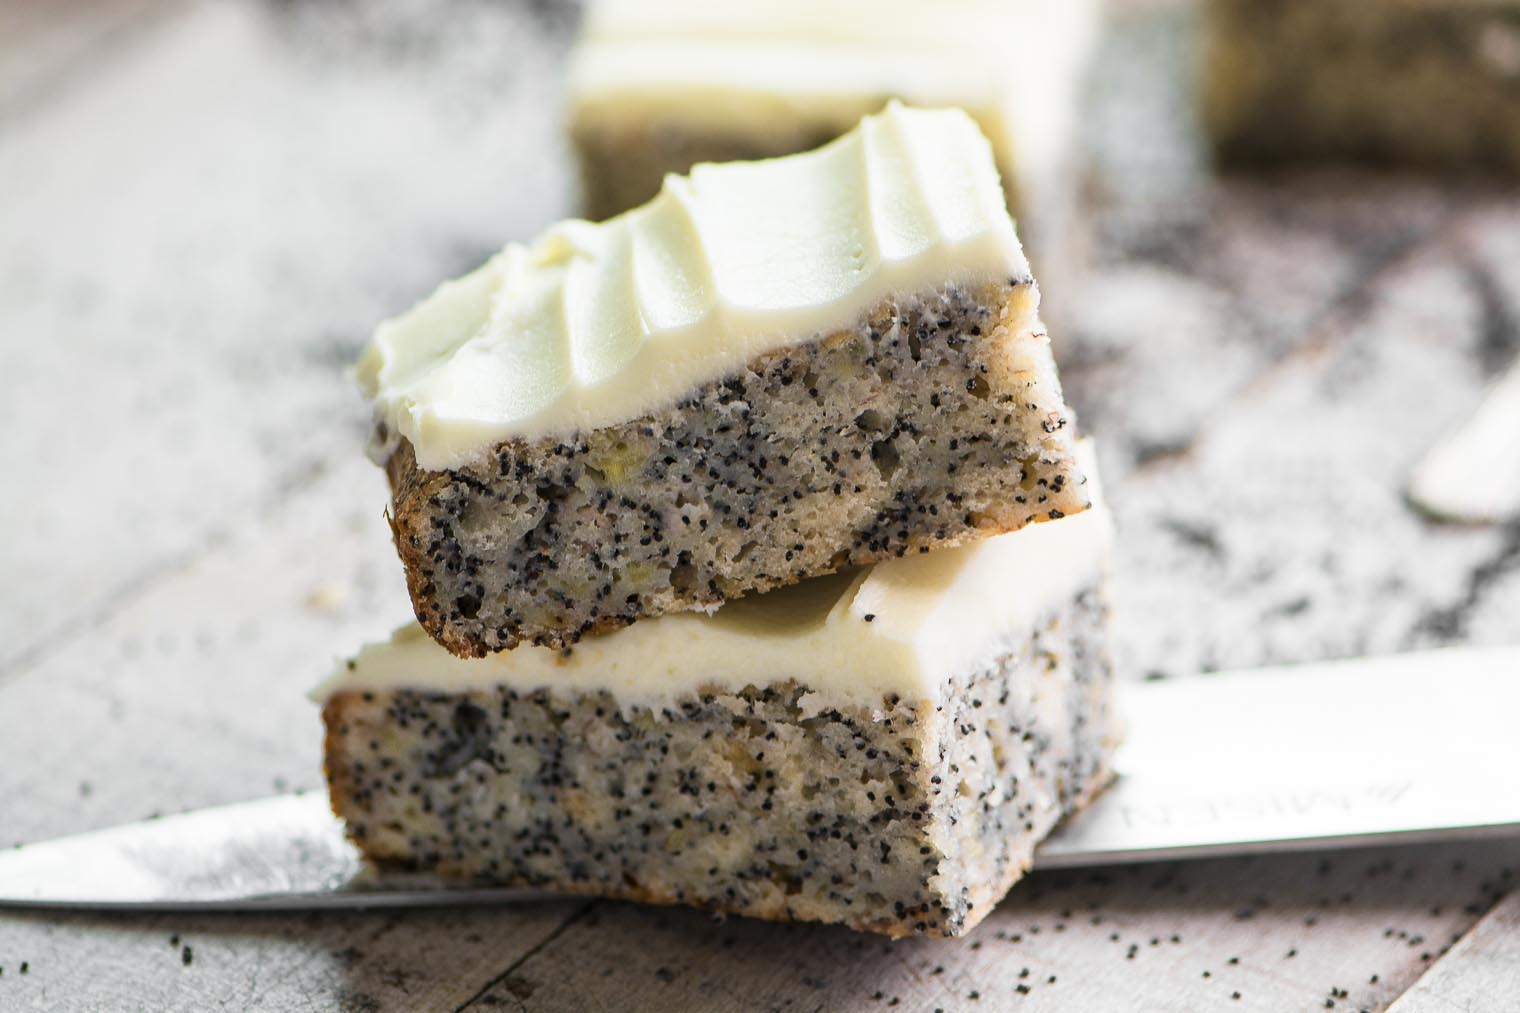 slices of banana poppy seed cake on a knife